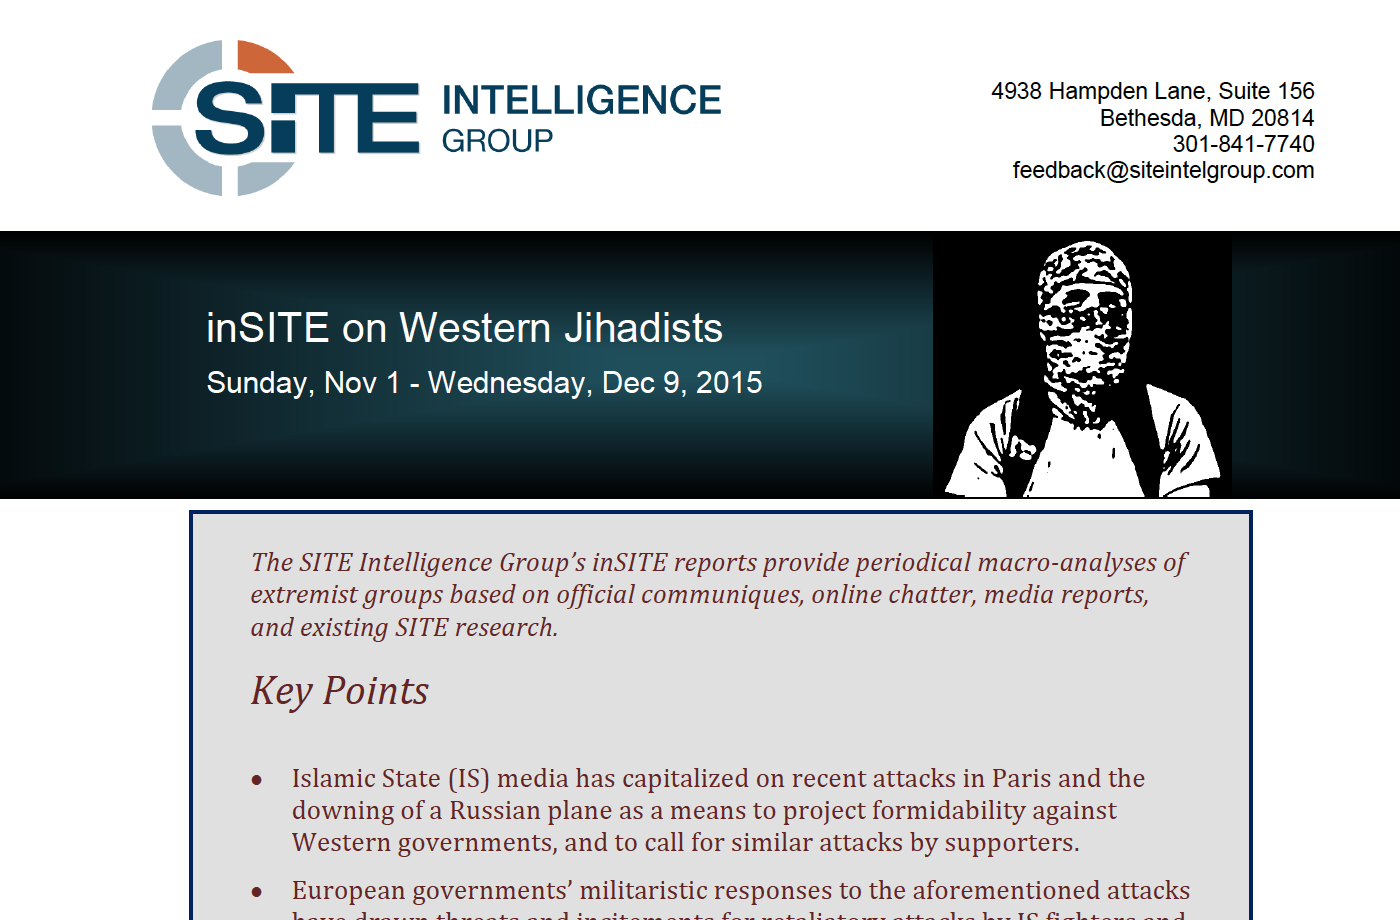 inSITE on Western Jihadists Sunday, Nov 1 - Wednesday, Dec 9, 2015